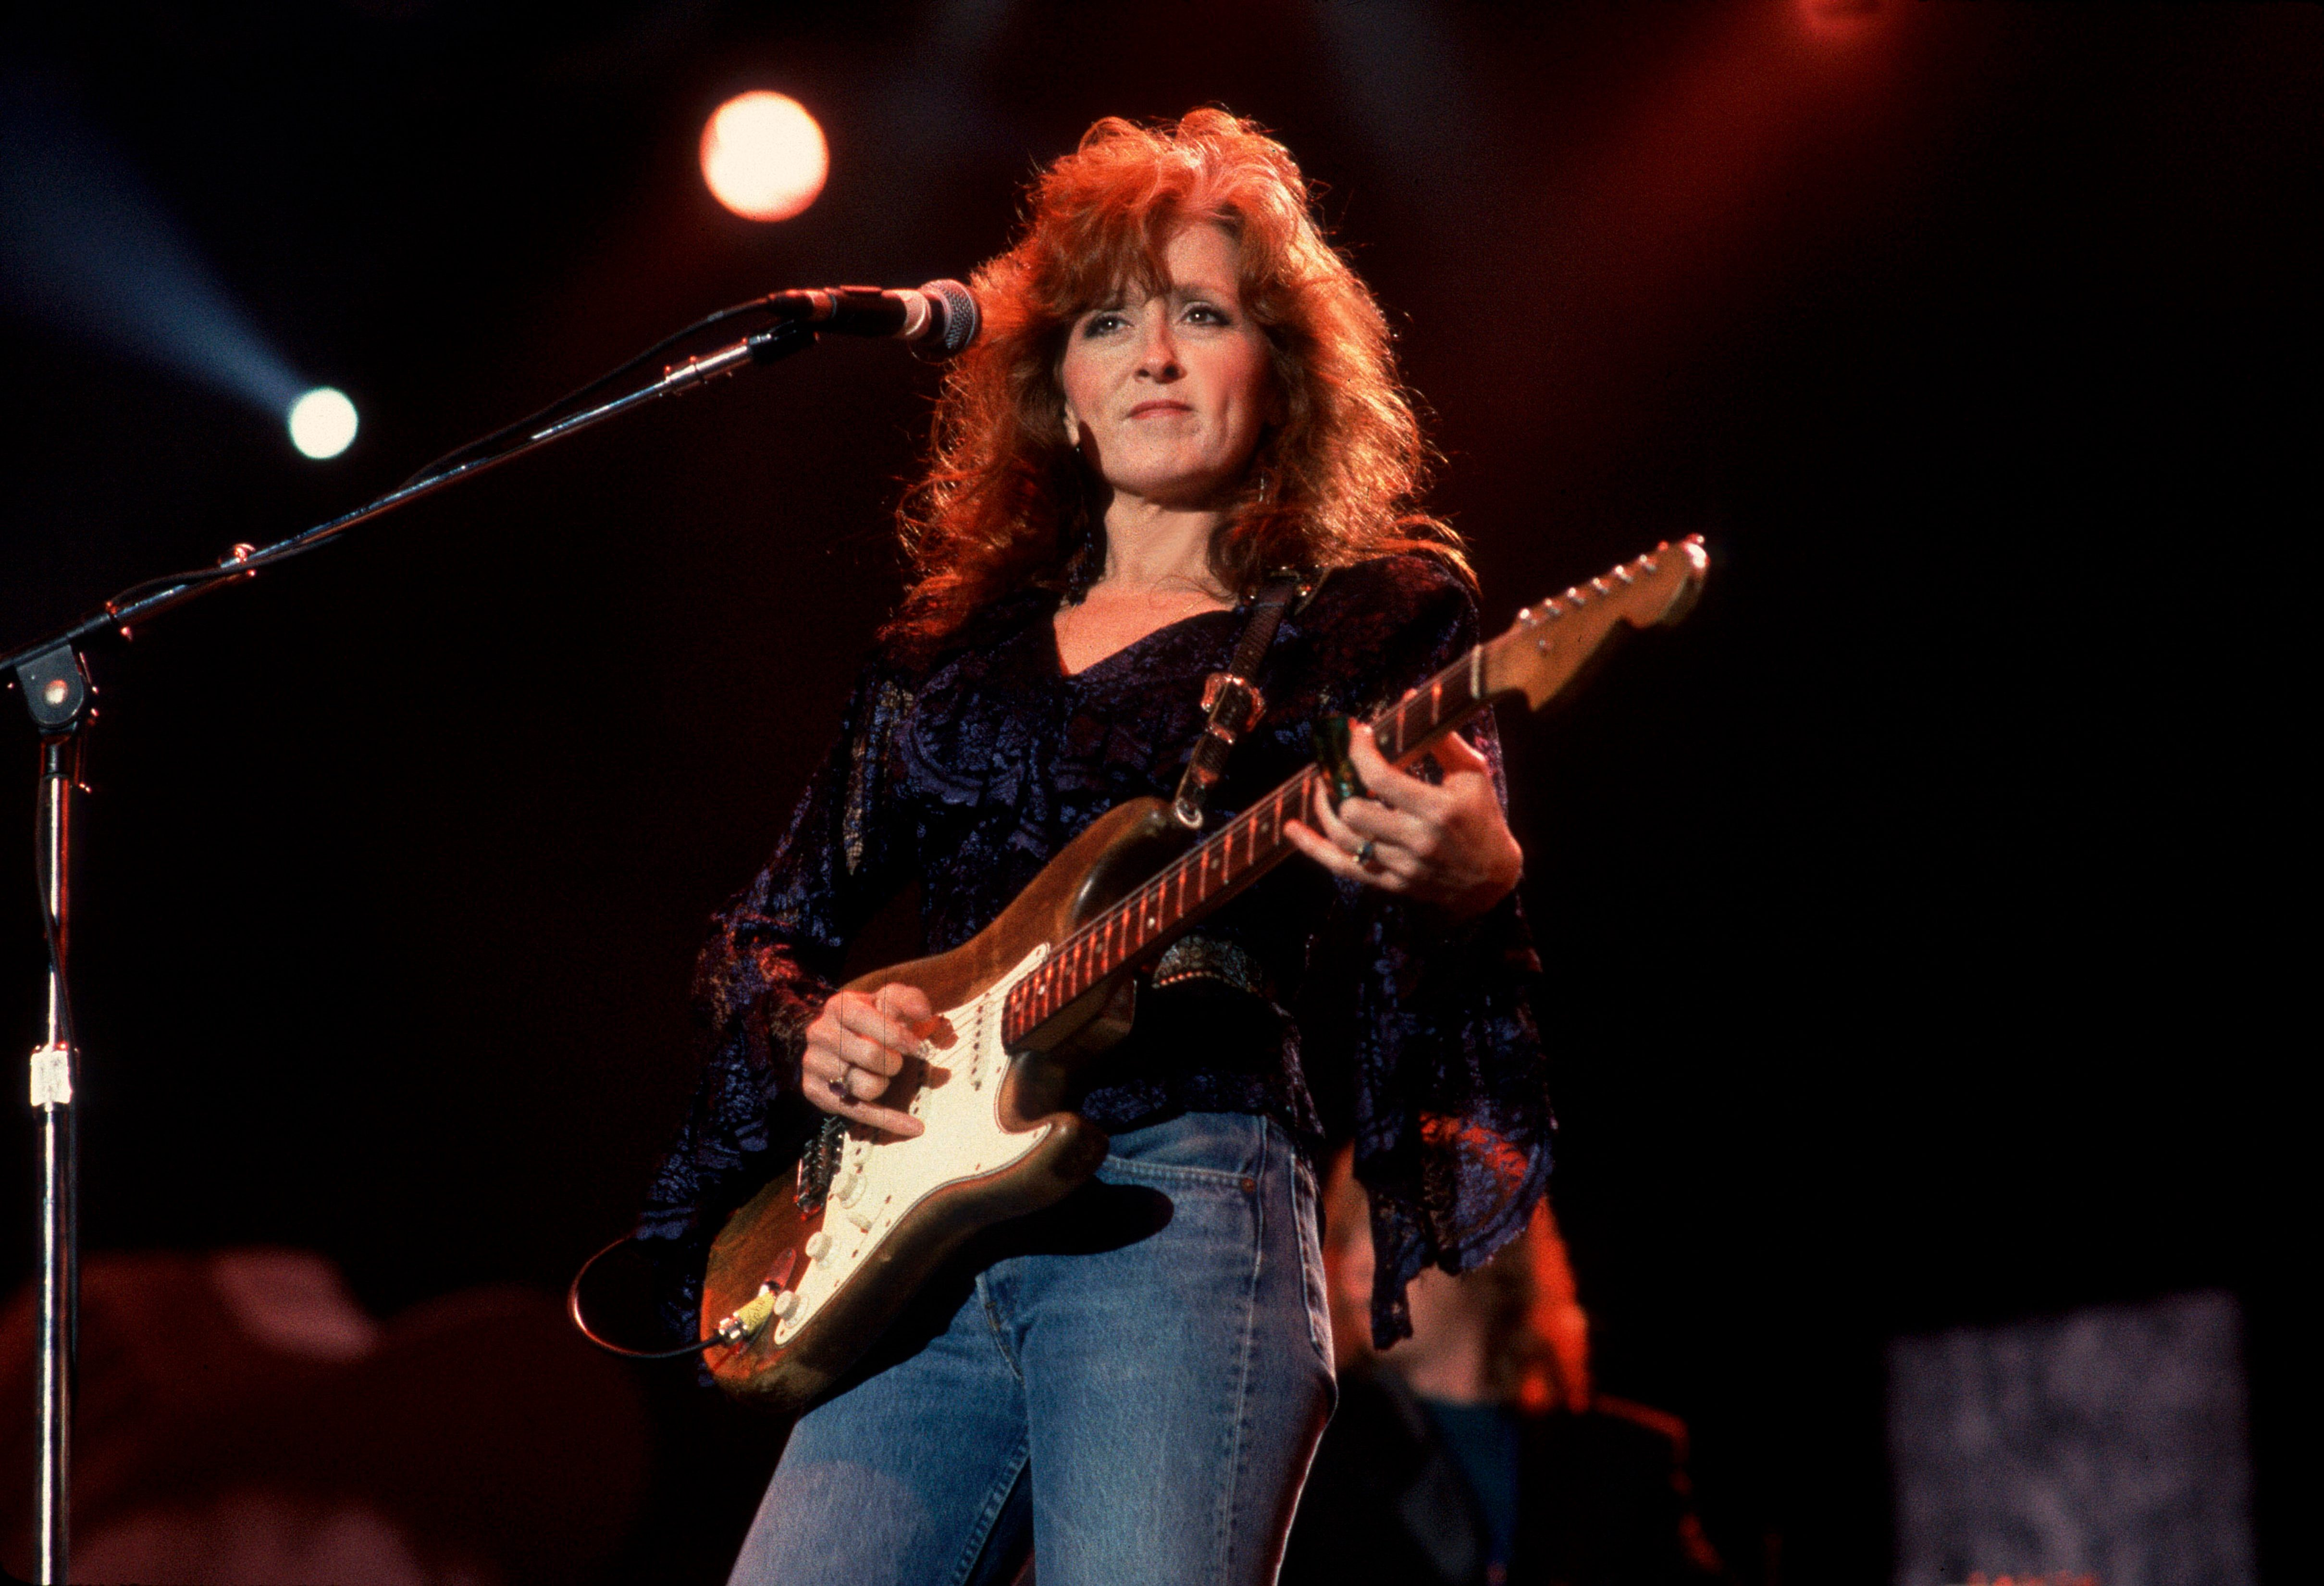 Bonnie Raitt performs at Farm Aid in the Hoosier Dome, Indianapolis, Indiana, April 7, 1990